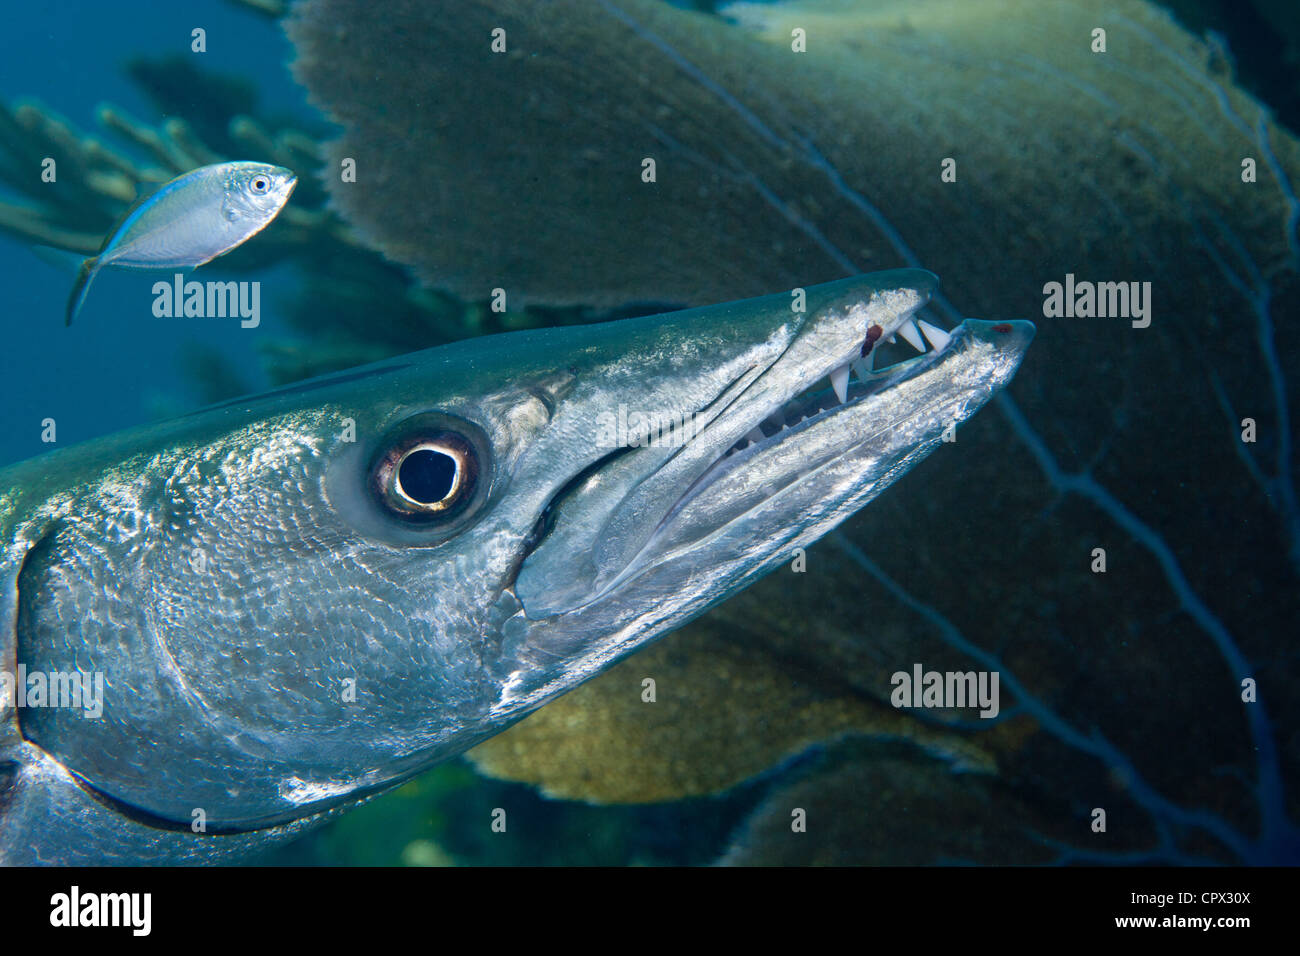 Closeup of Great Barracuda Stock Photo